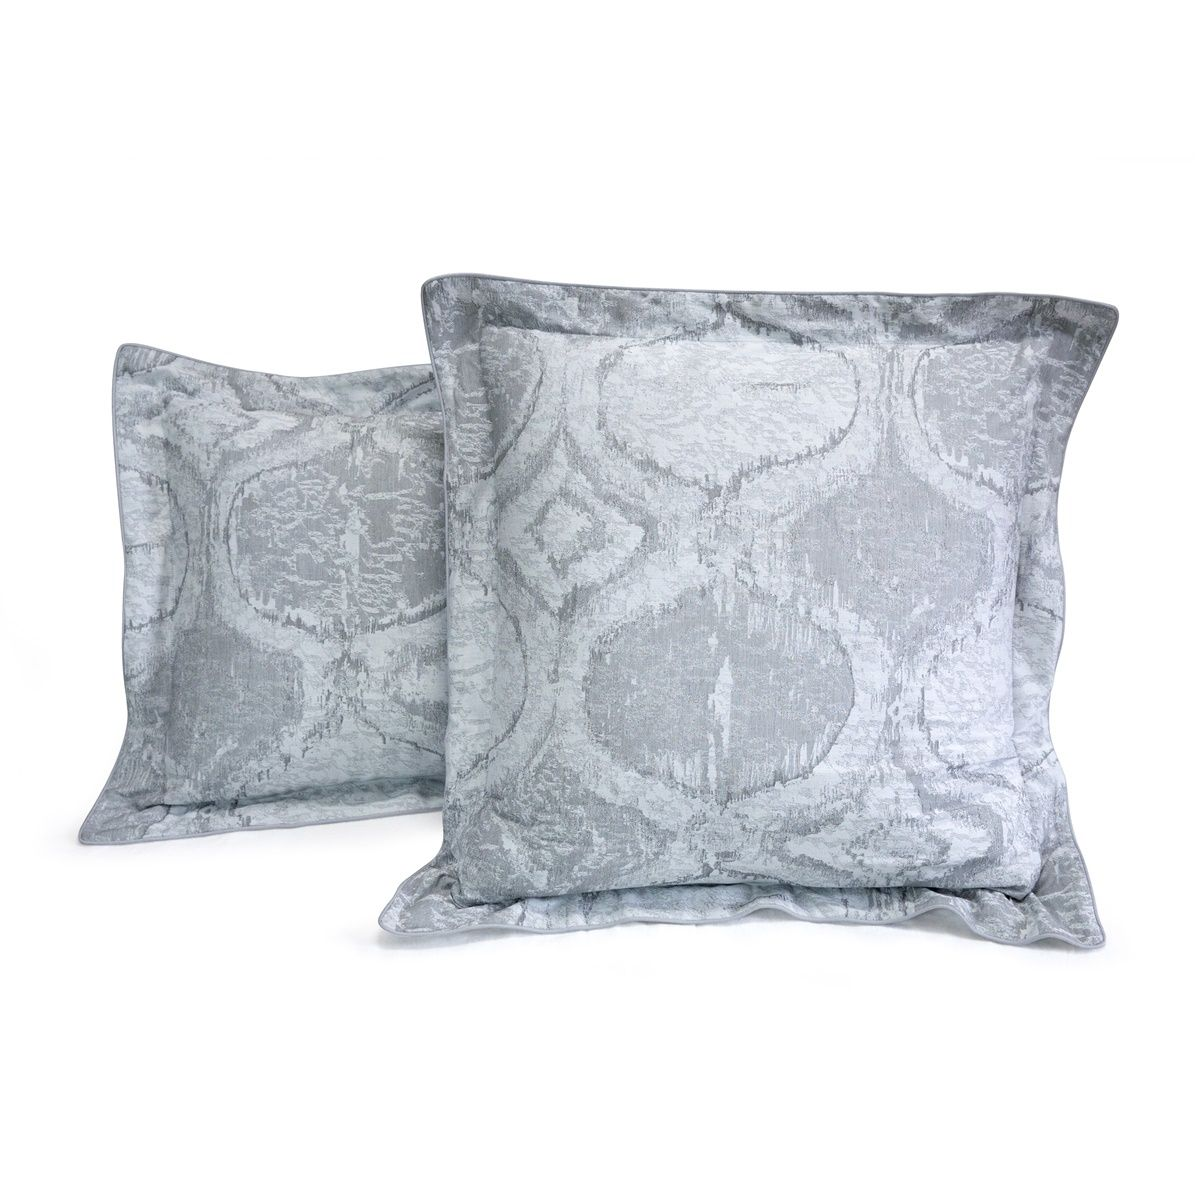 Hamptons Pillowcase | Bed linen | Tradition des Vosges